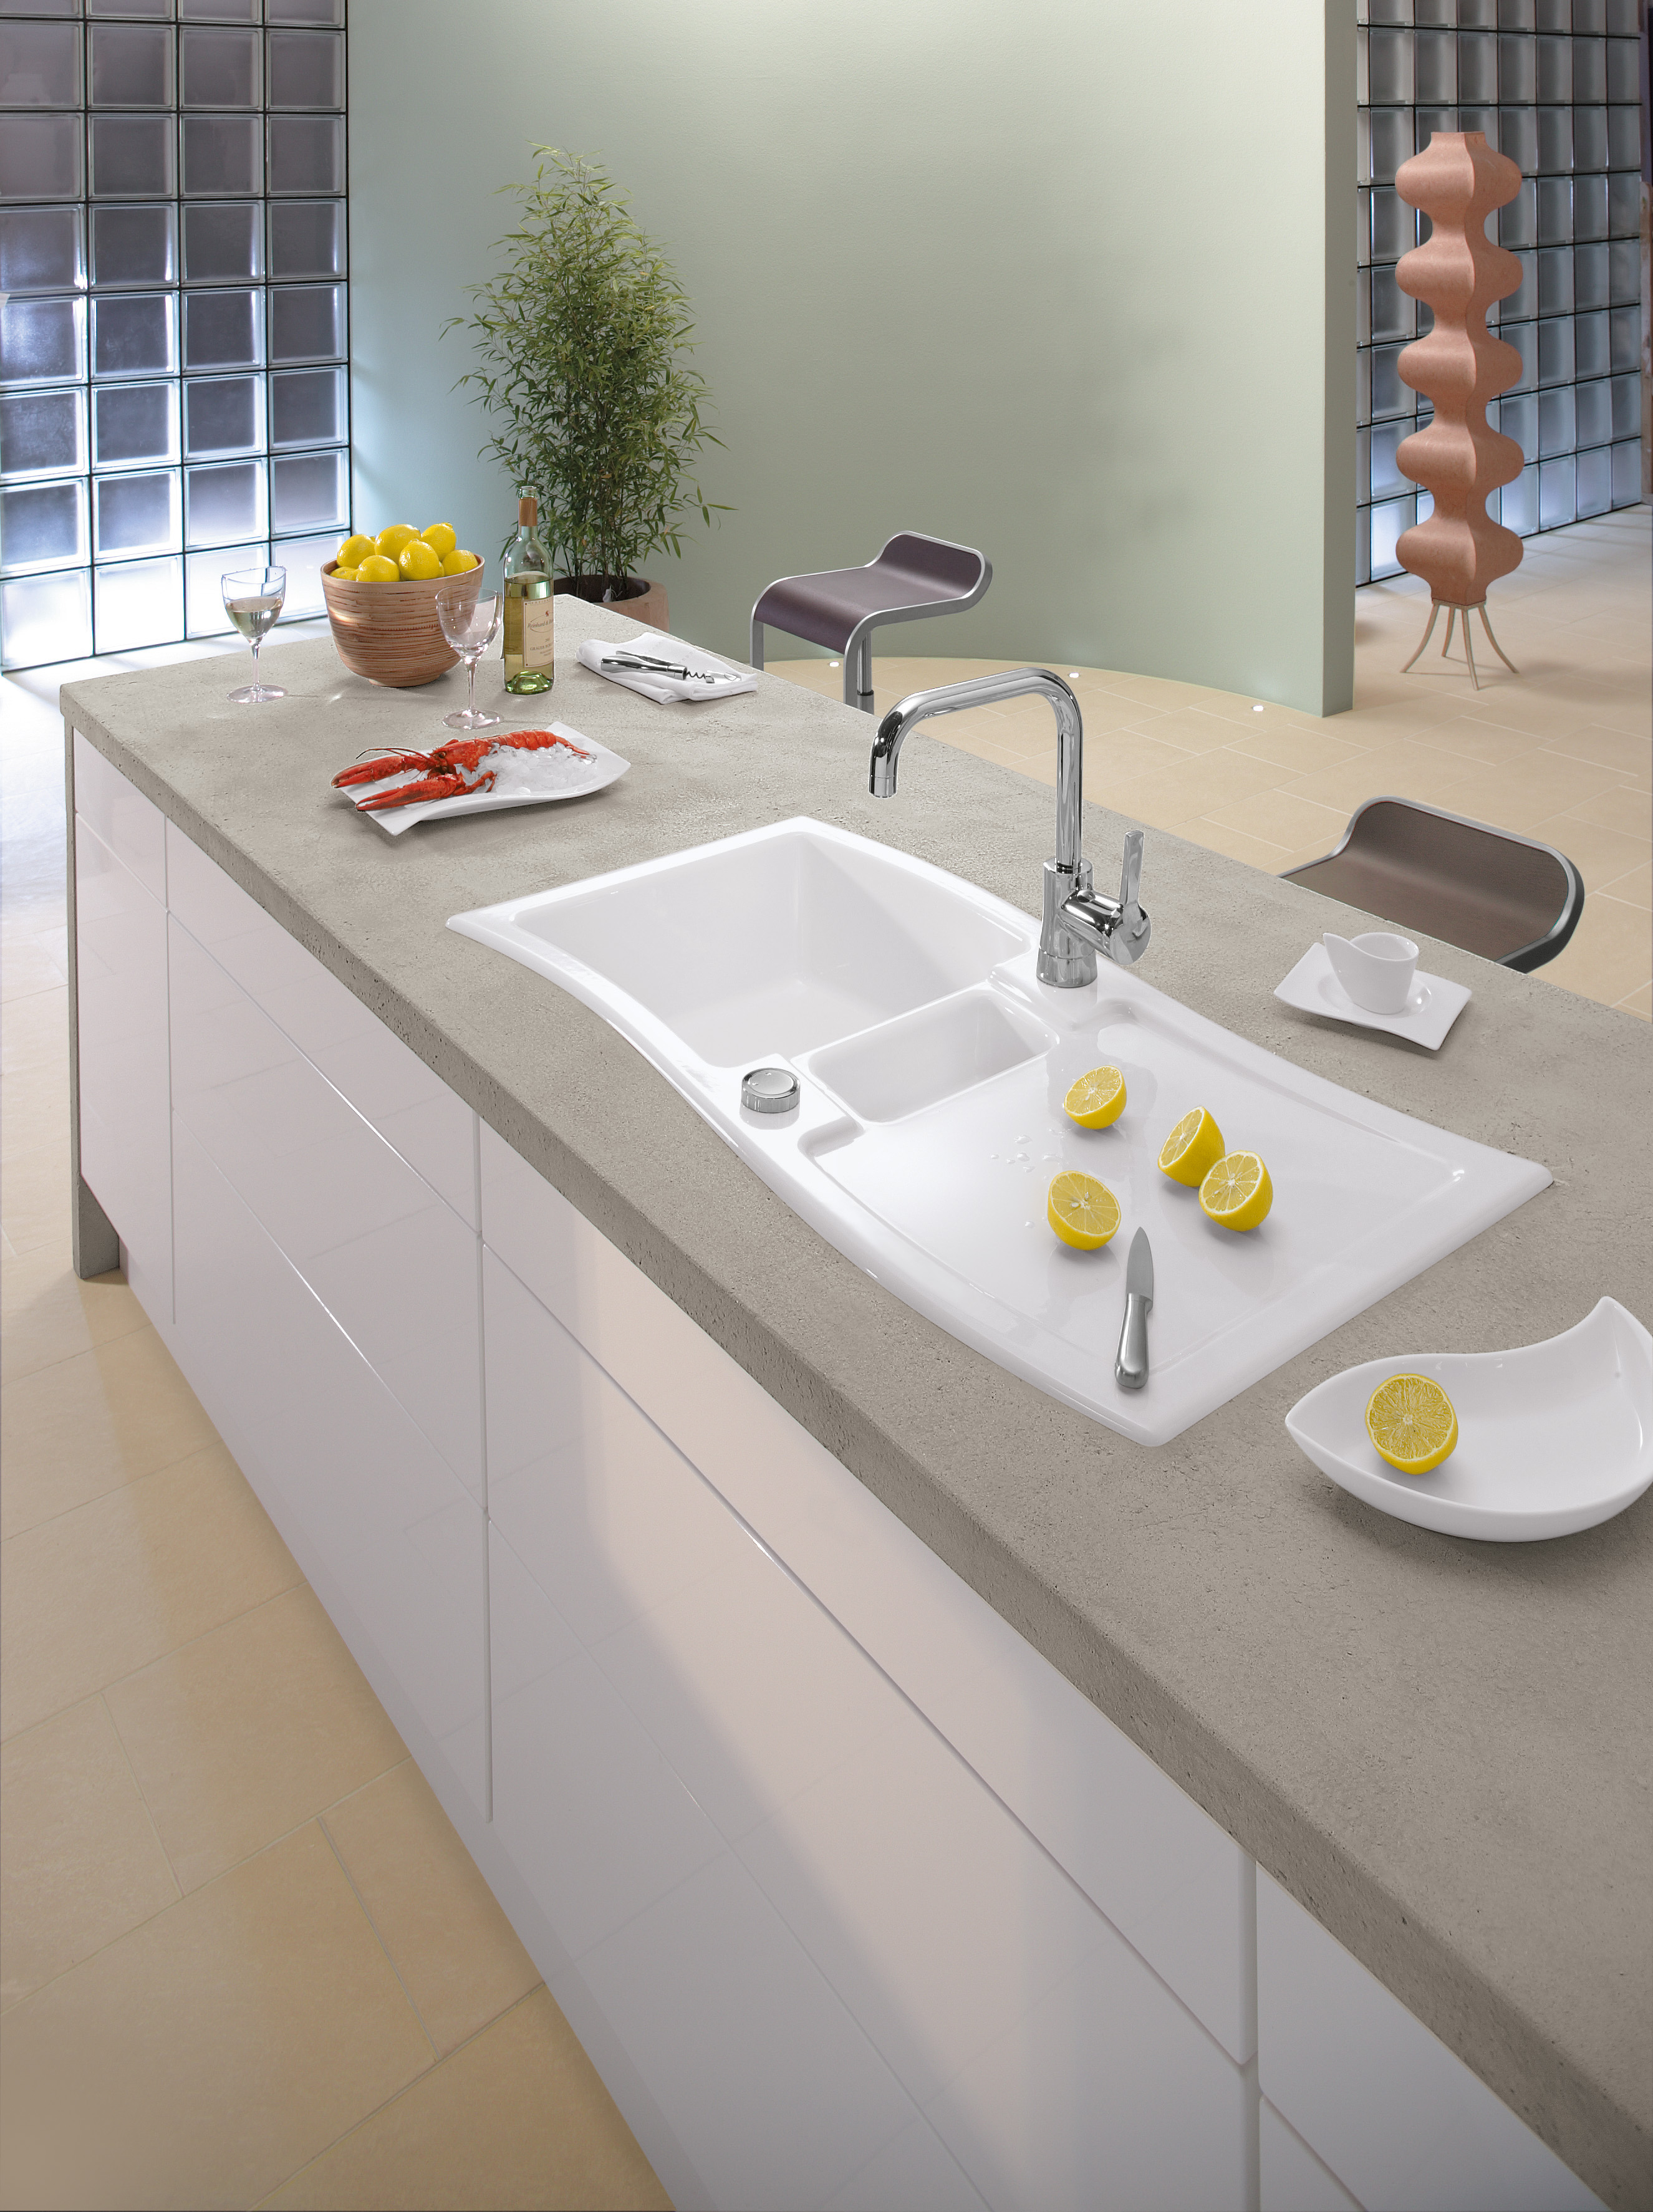 New Wave Built-in sinks